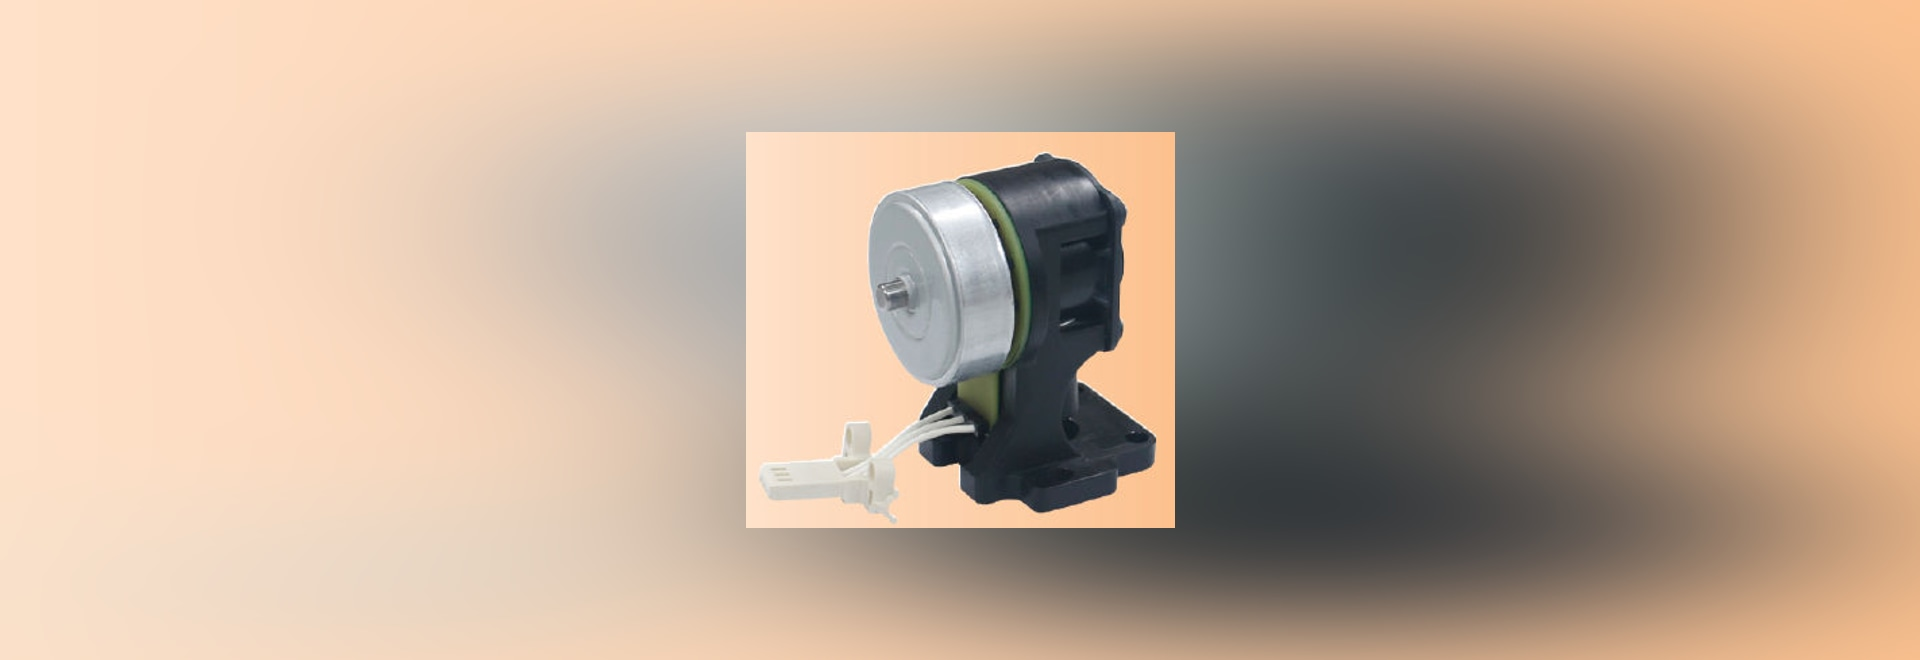 NEW: brushless motor by Johnson Electric